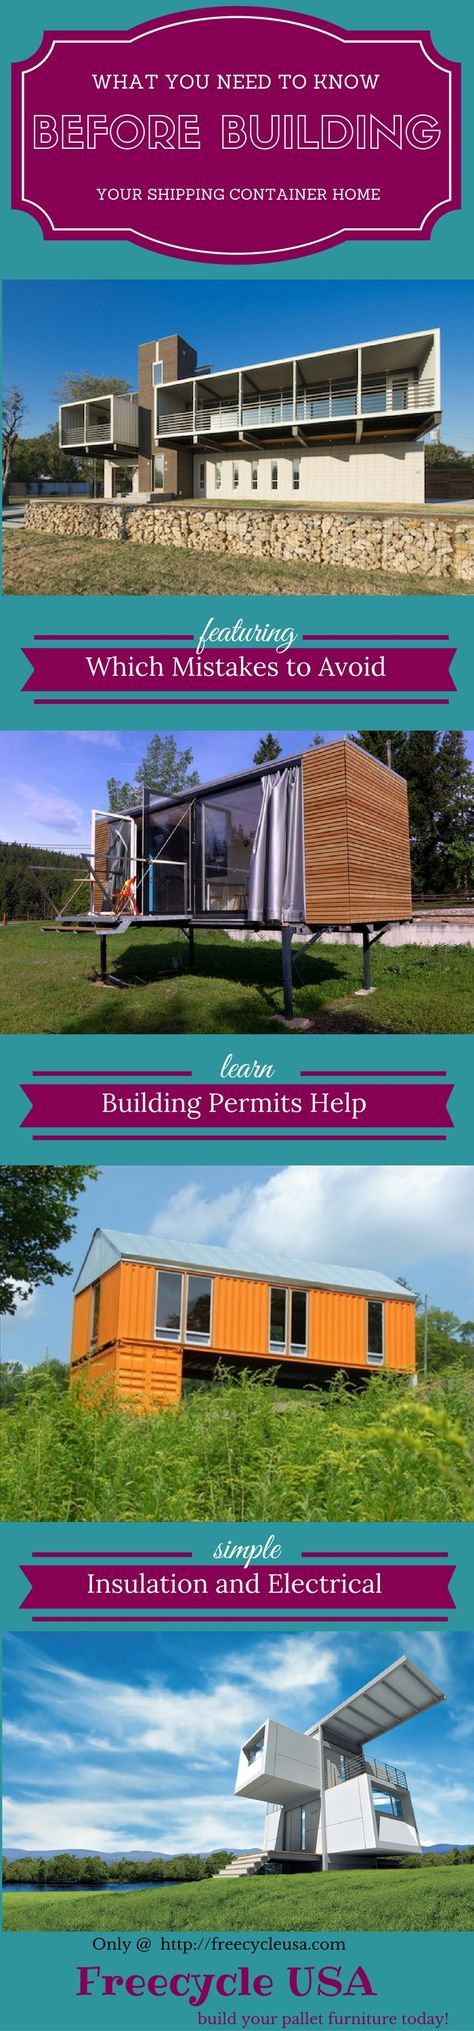 17 best ideas about container buildings on pinterest for Build your own barn online